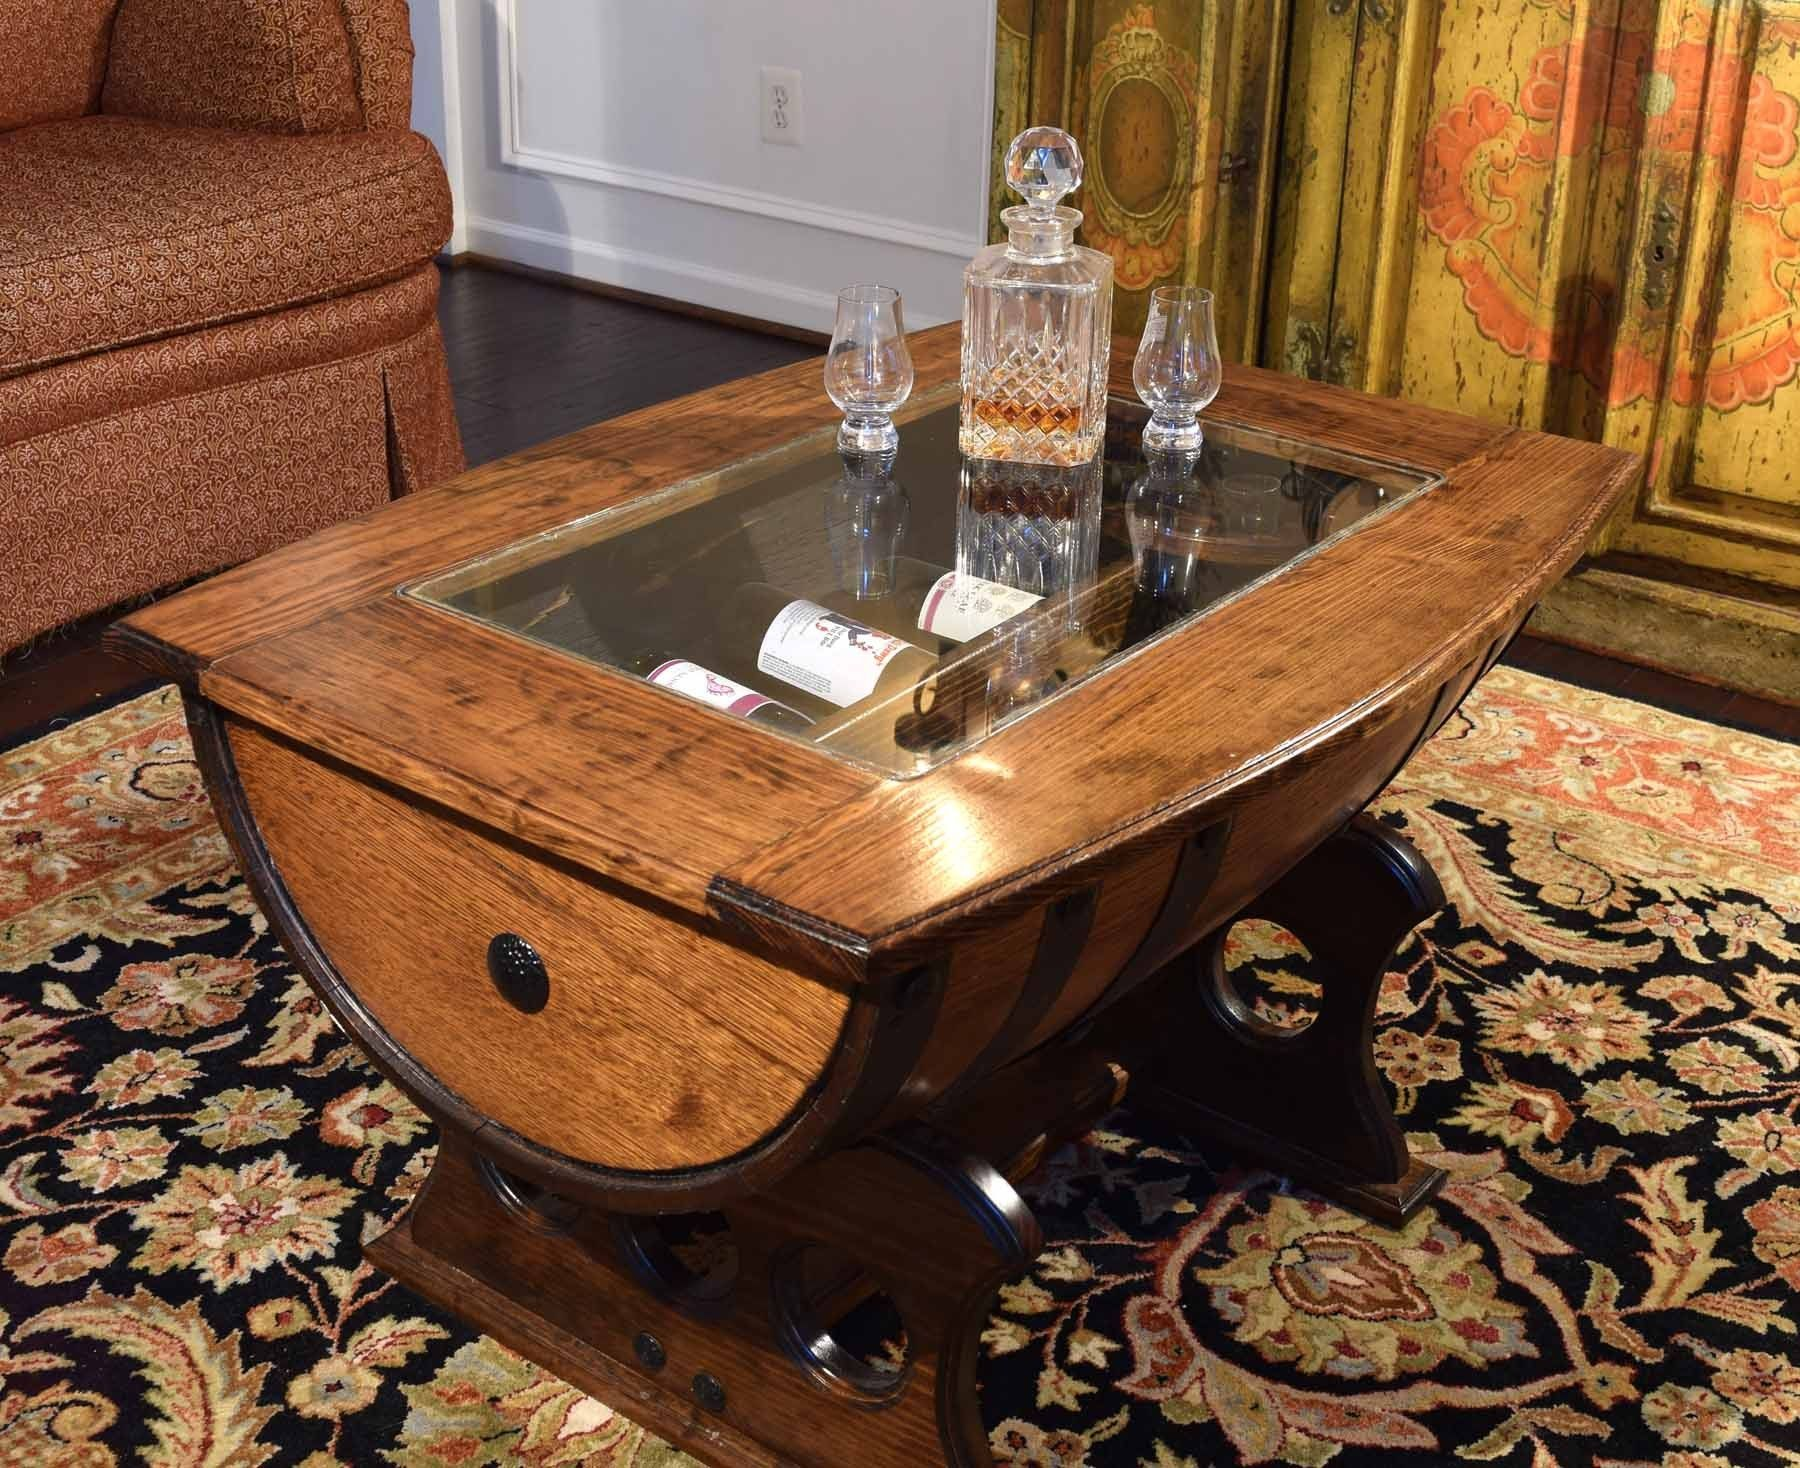 Wine Barrel Coffee Table Glass Top Download Whiskey Barrel Coffee Table With Glass Top Bottle Wine Barrel Coffee Table Reclaimed Coffee Table Coffee Table [ 1468 x 1800 Pixel ]